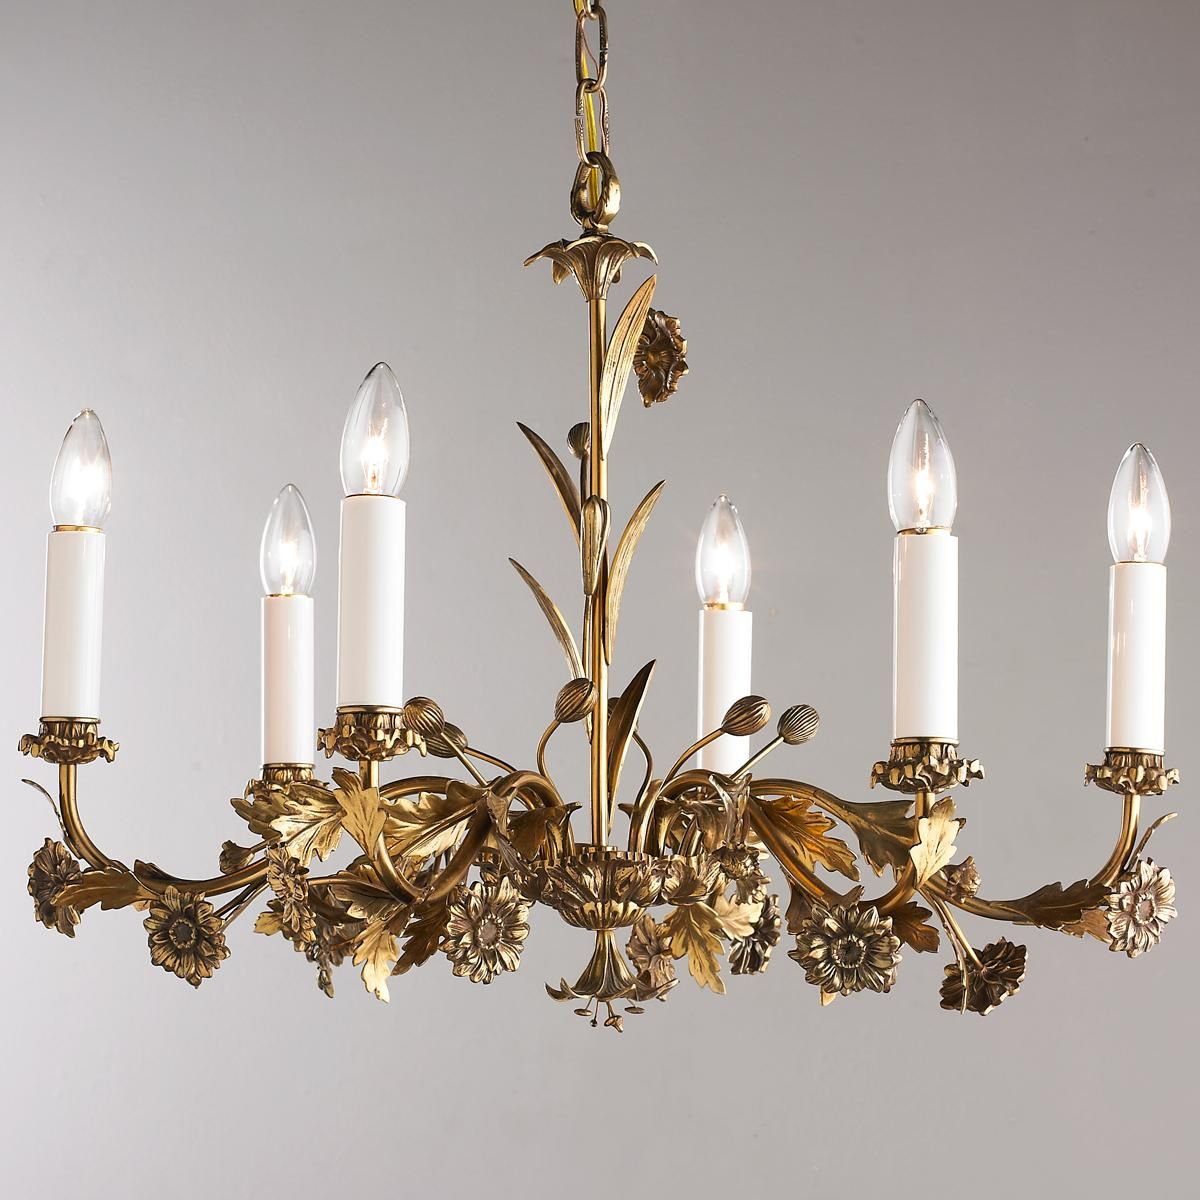 Antique 6 arm floral brass chandelier lighting pinterest simple antique brass chandeliers remarkable chandelier remodel ideas with antique brass chandeliers arubaitofo Images